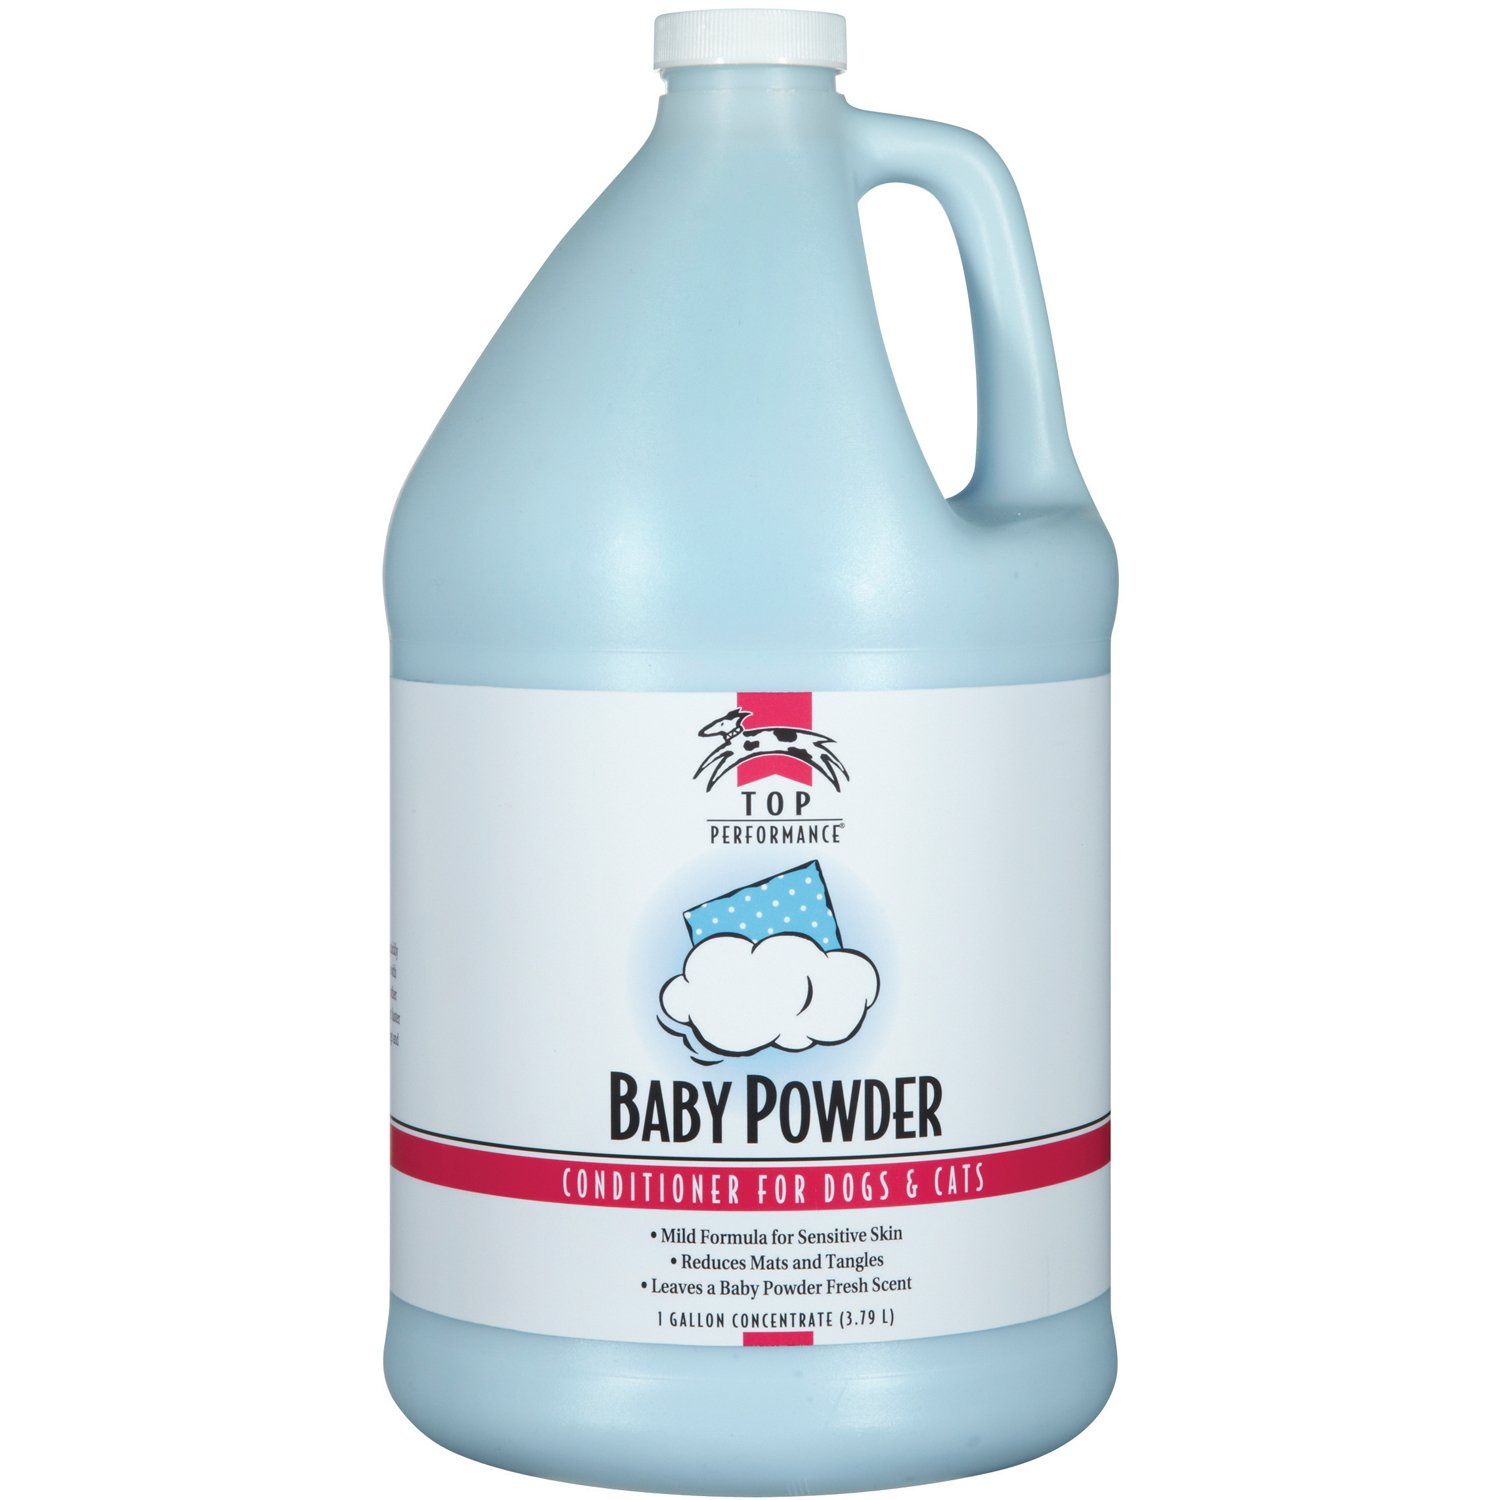 Top Performance Baby Powder Pet Conditioner, 1-Gallon by Top Performance